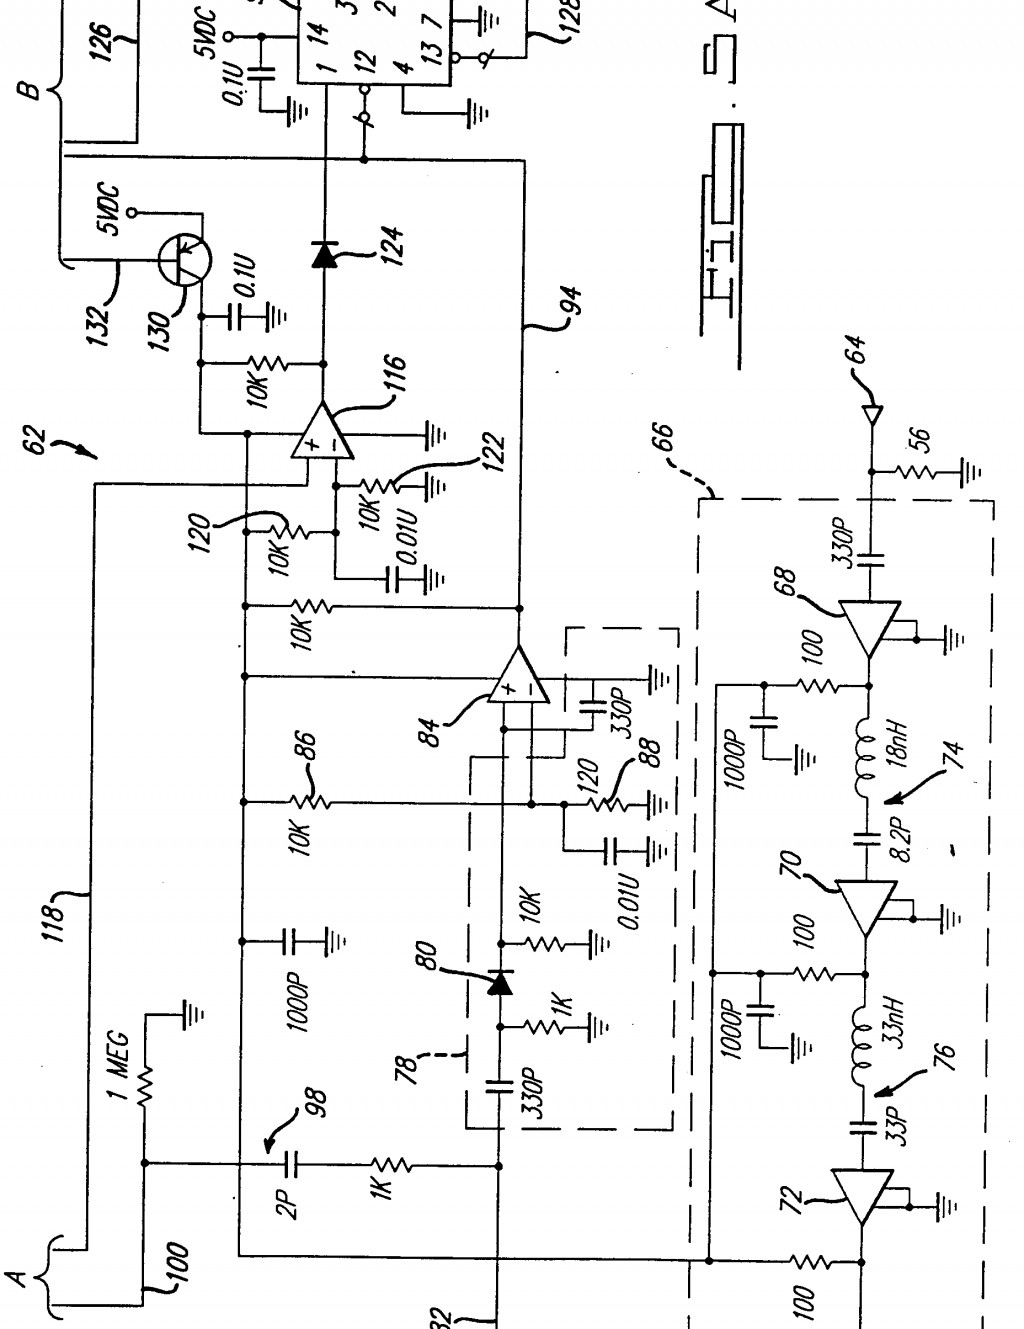 Chamberlain Garage Door Wiring Diagram